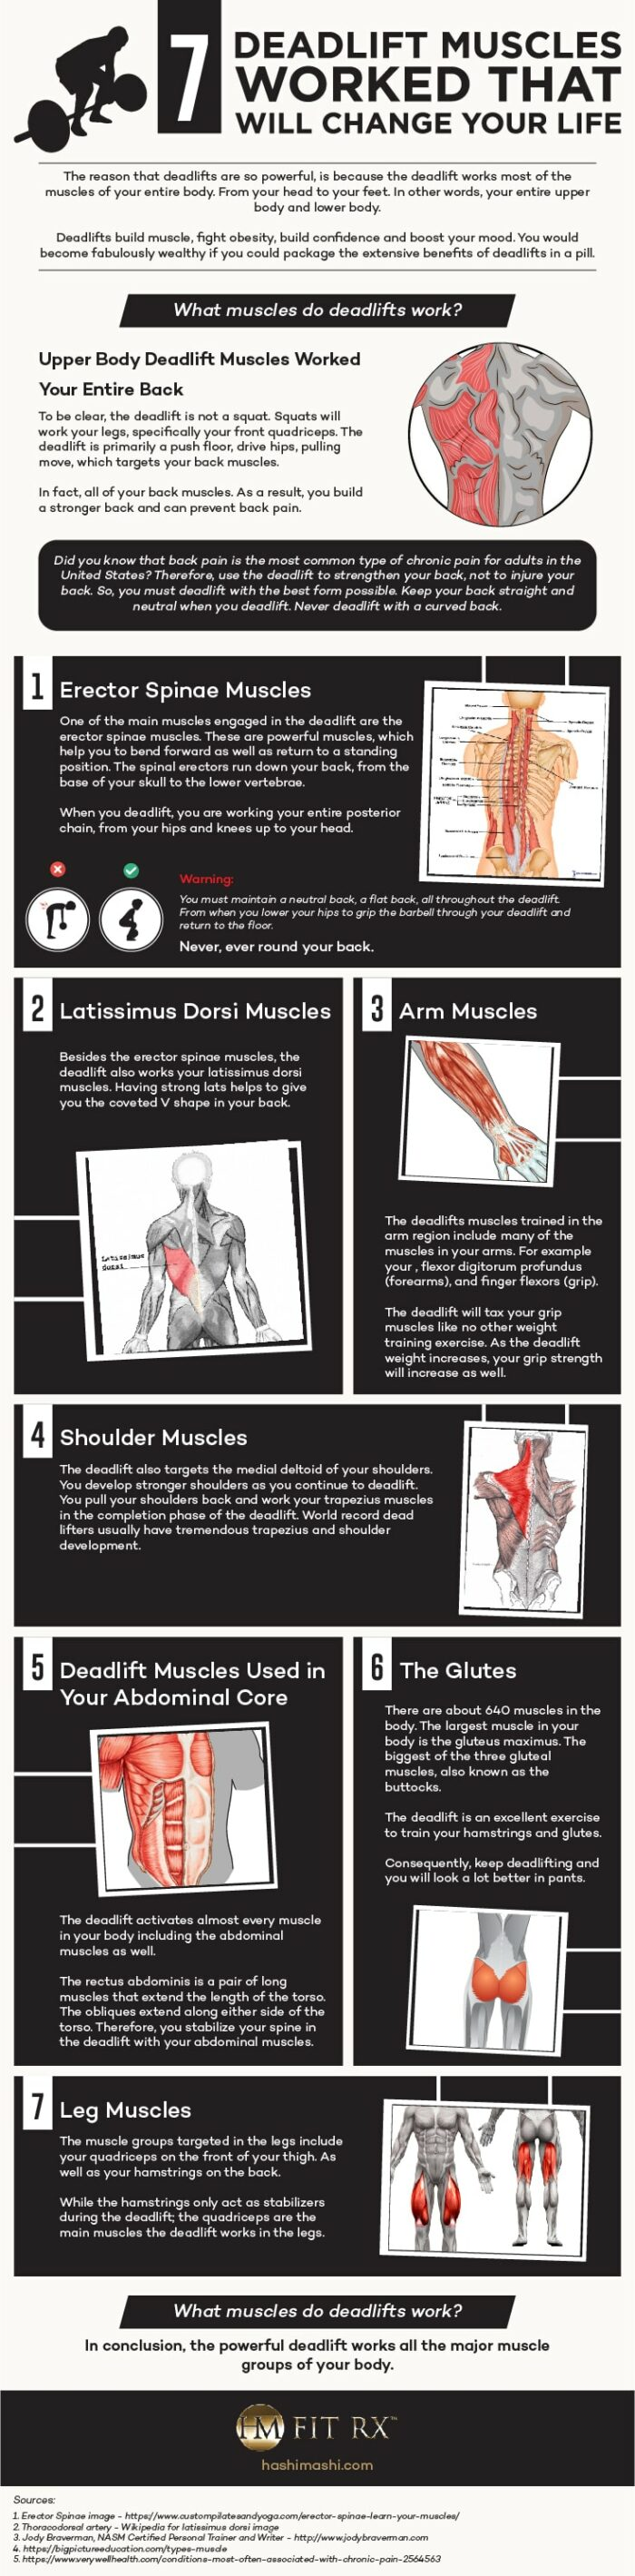 deadlift muscles used infographic credit HashiMashi.com